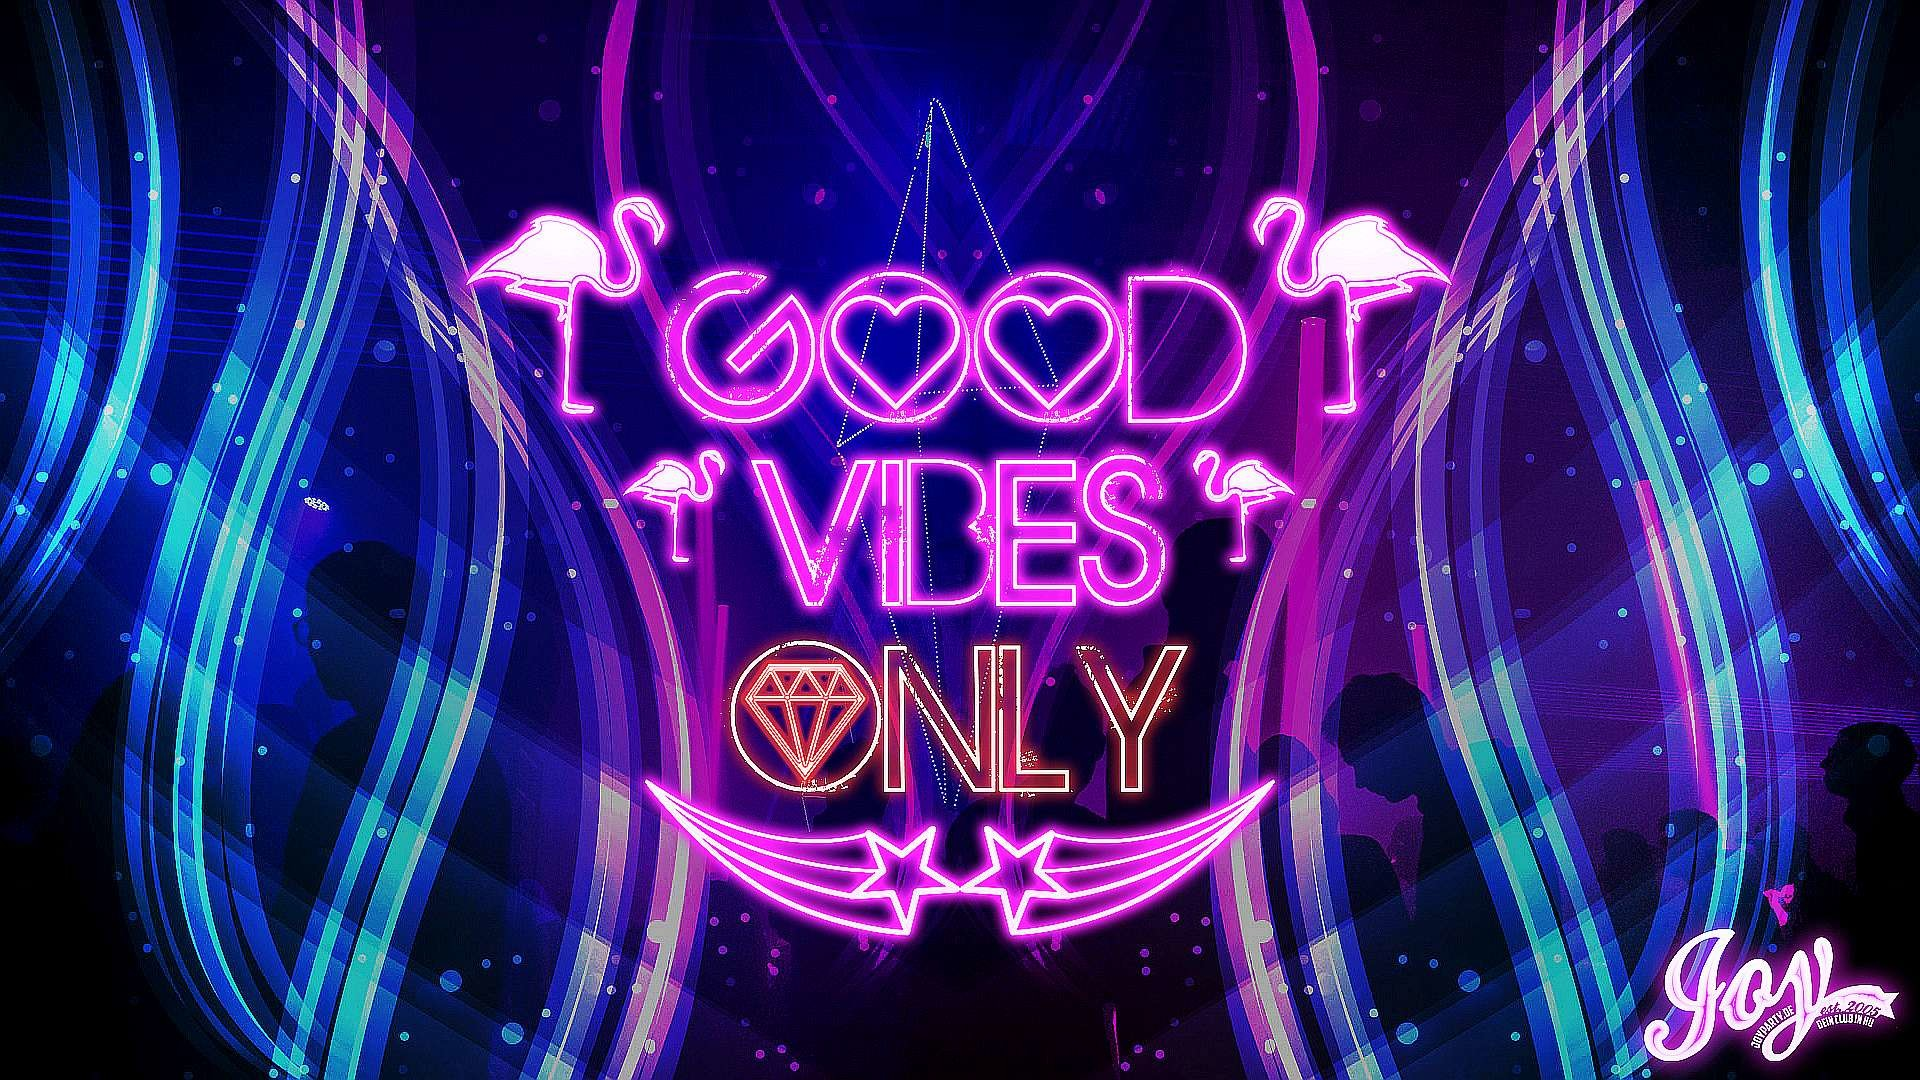 Good Vibes Only Data Src Gorgerous Good Vibes Only Good Wallpapers For Computer 1920x1080 Wallpaper Teahub Io